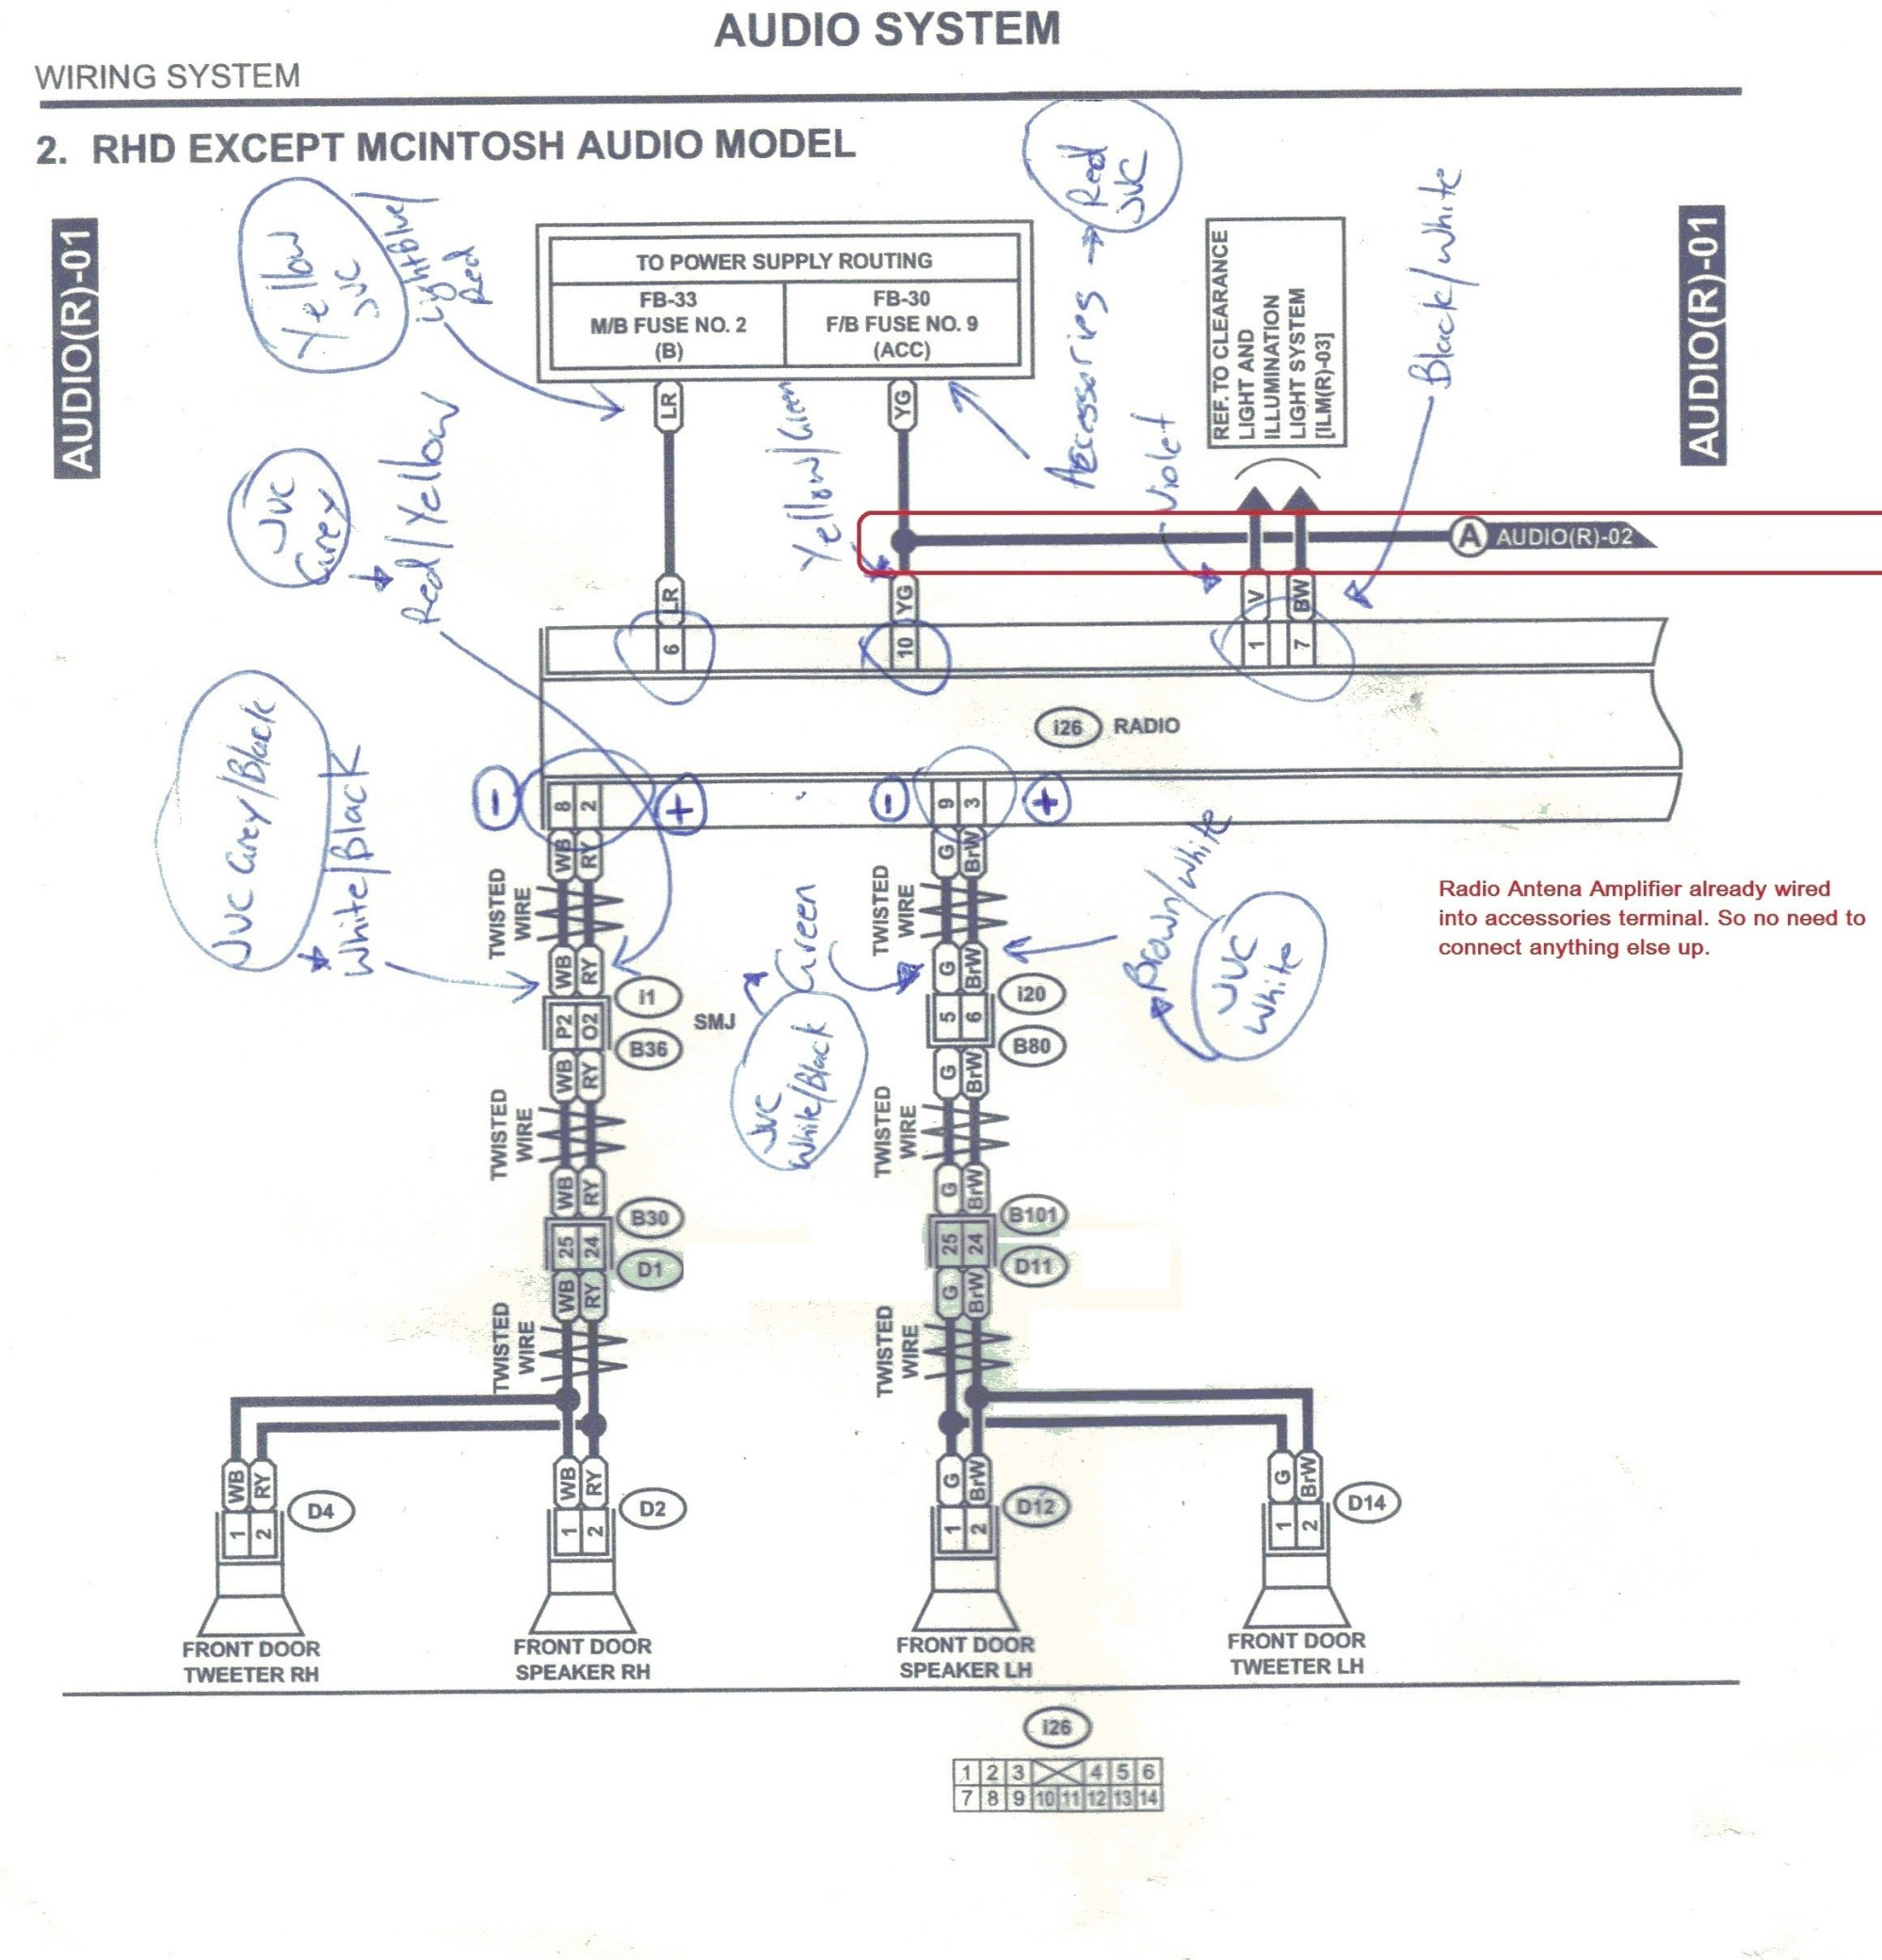 hight resolution of 97 subaru legacy fuse box diagram